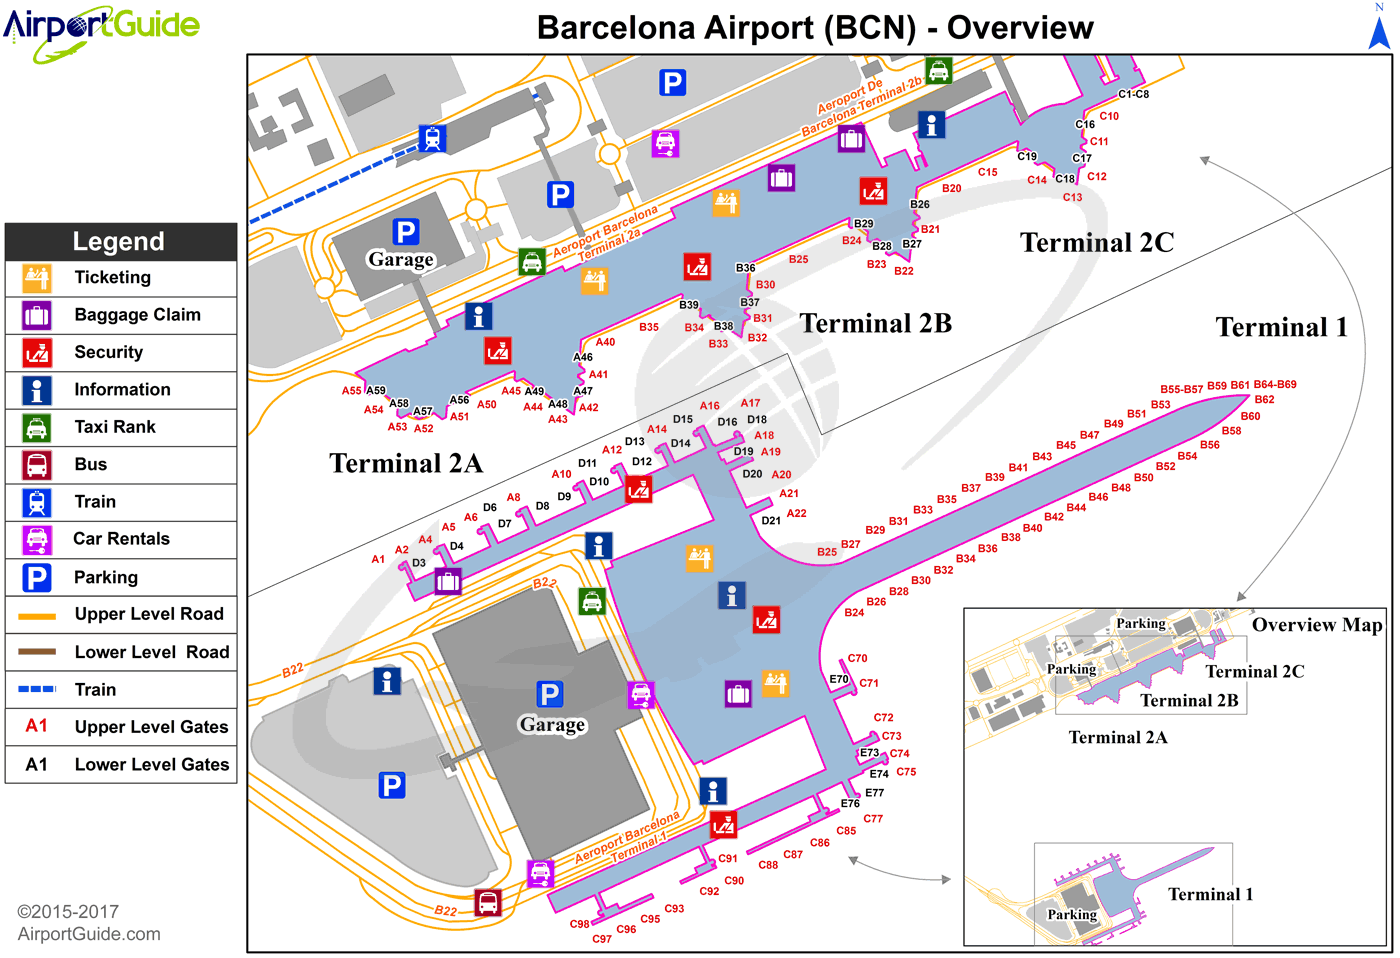 Barcelona - Barcelona International (BCN) Airport Terminal Map - Overview